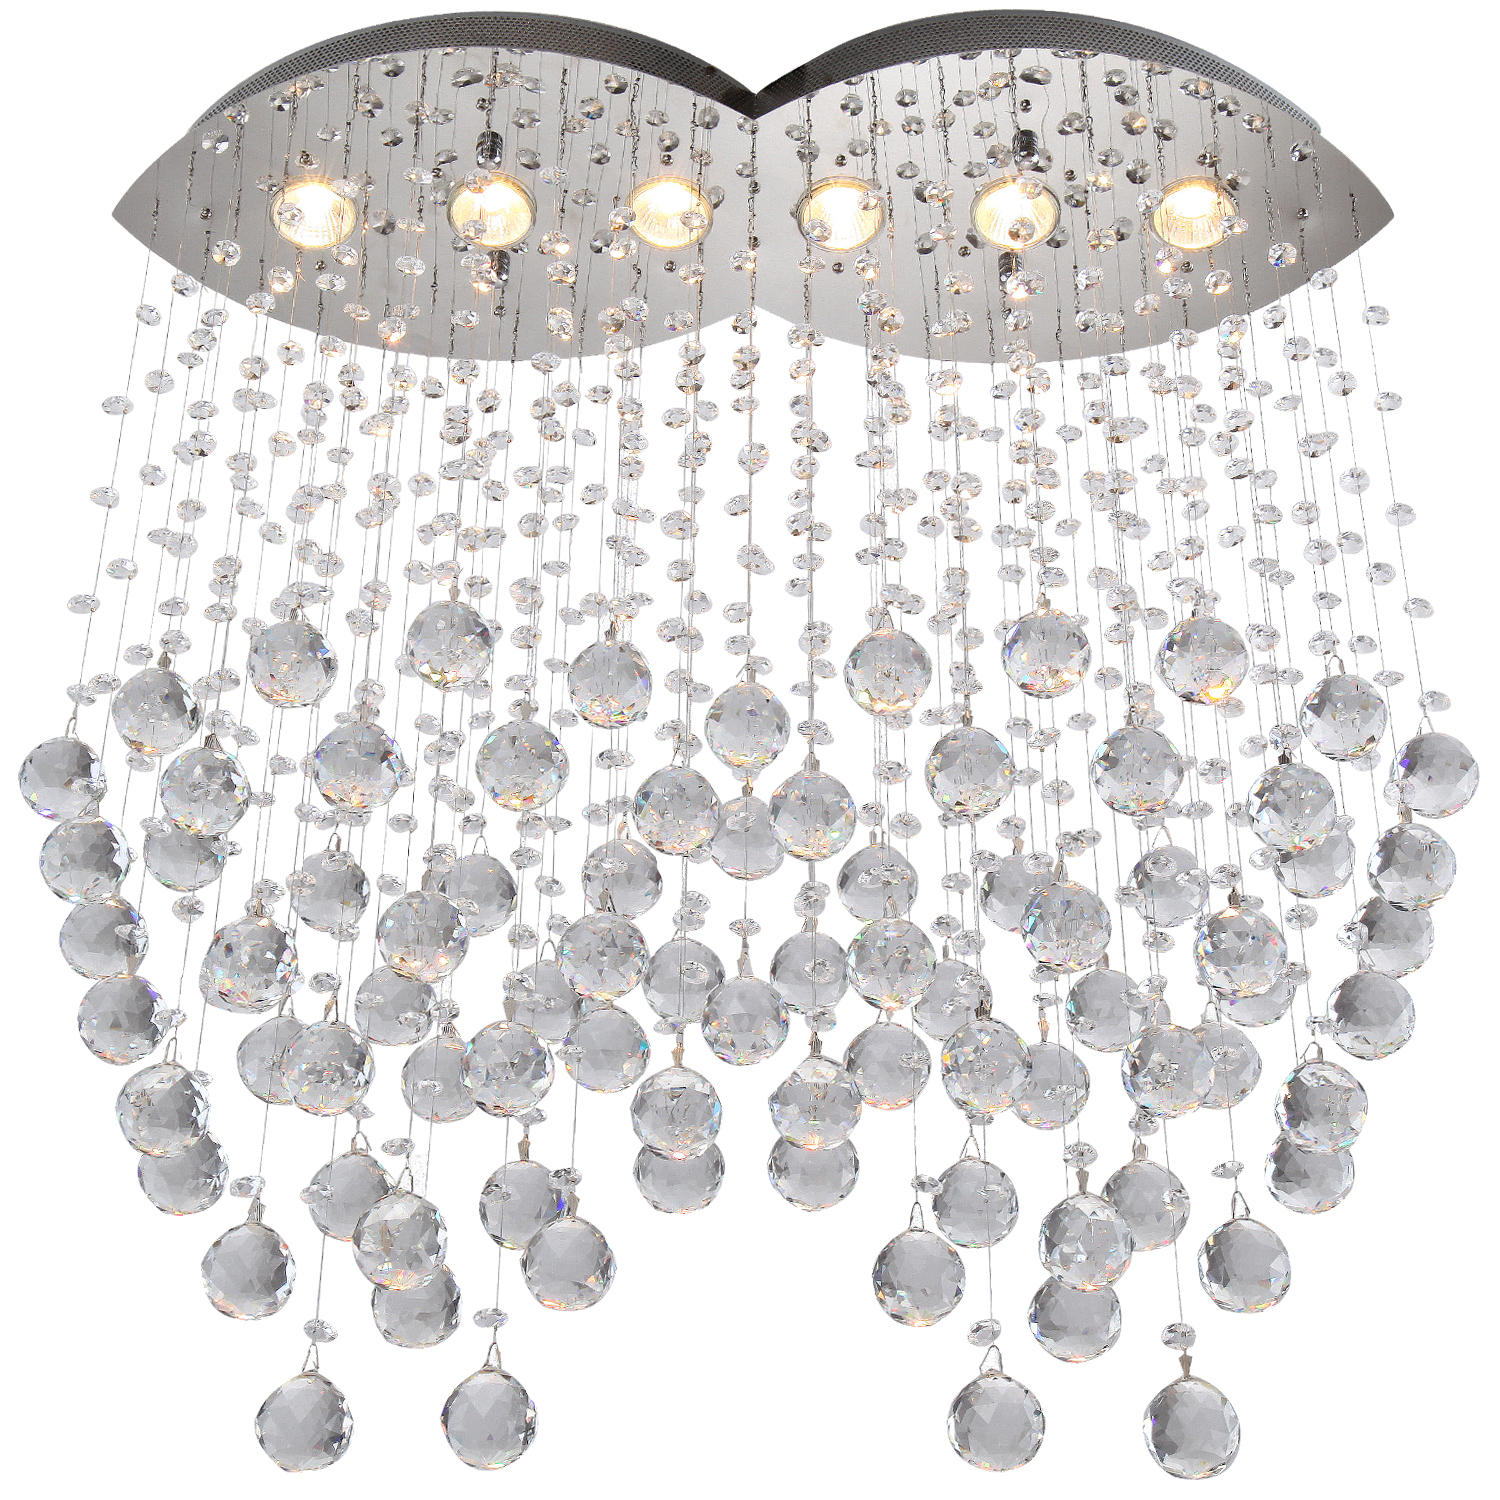 6 Light Pendant Chandelier Light Chrome Finish With European Crystals